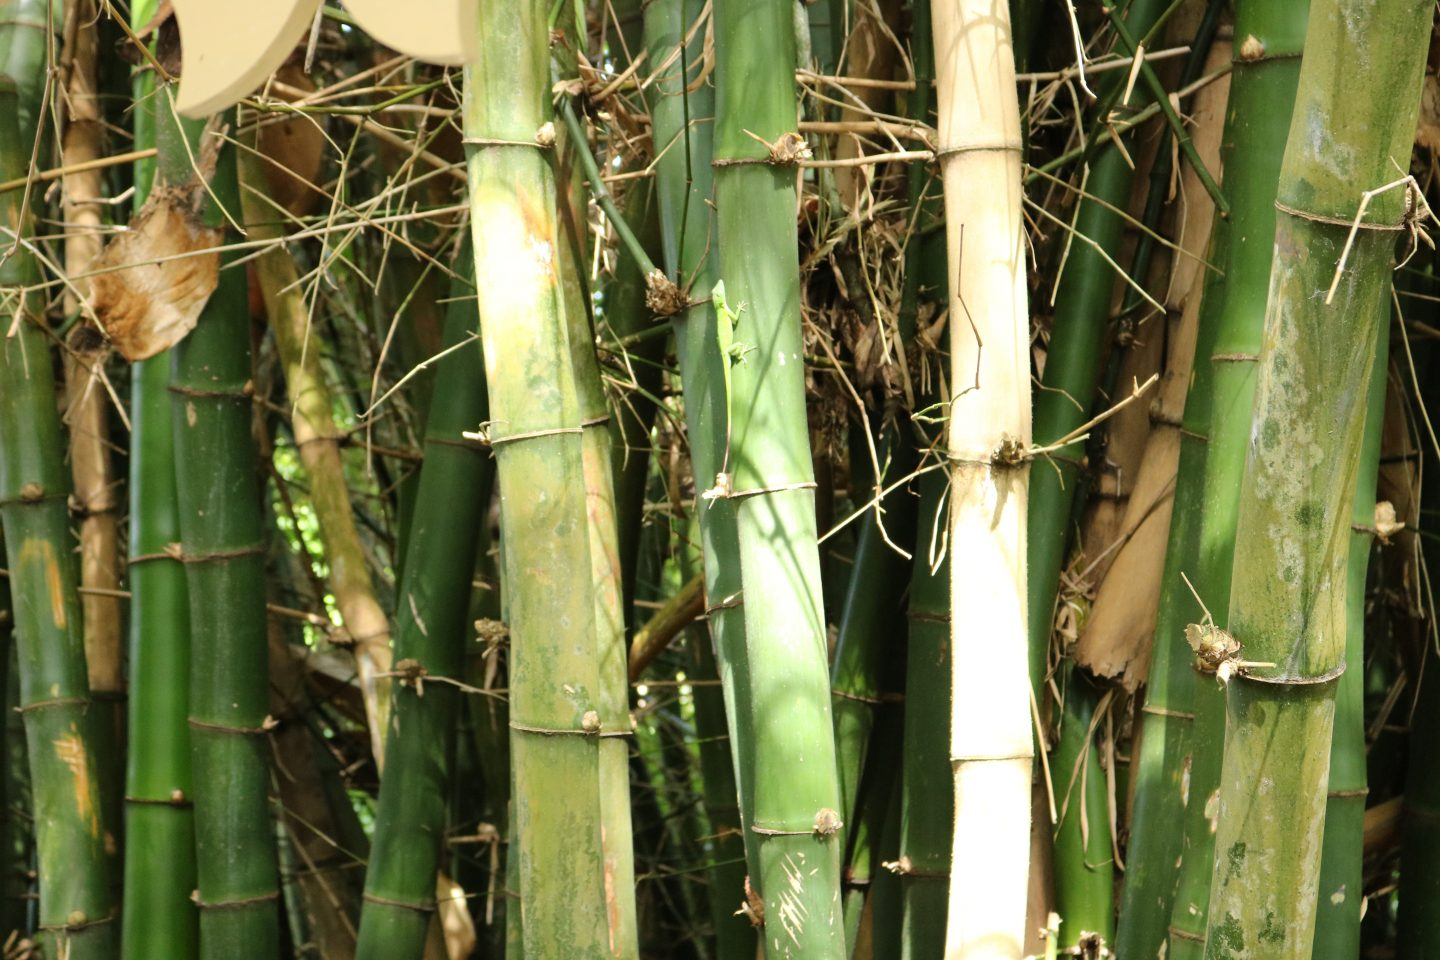 lizard in bamboo